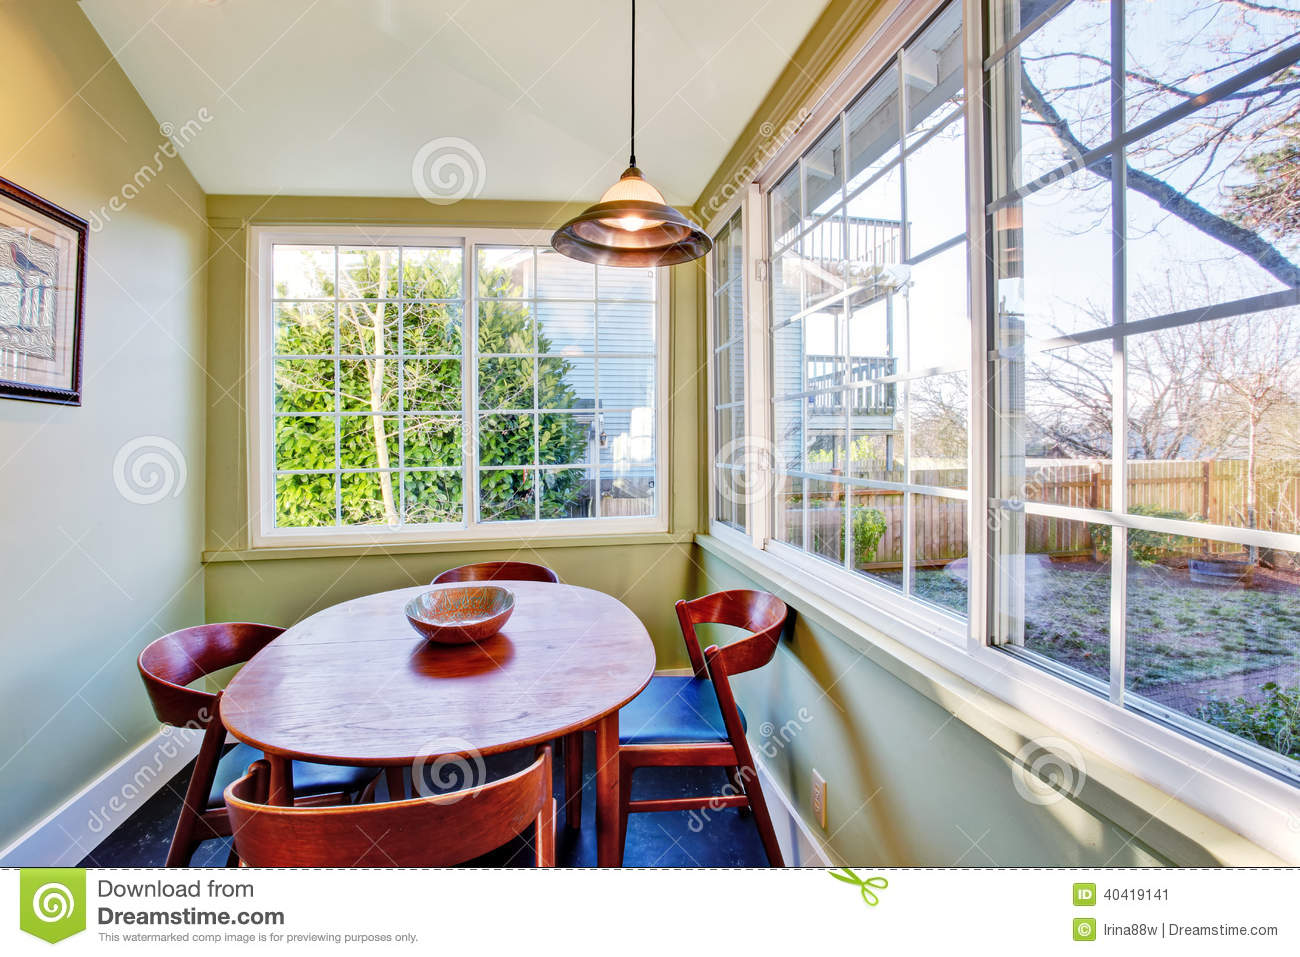 dining room interior stock photo image 40419141